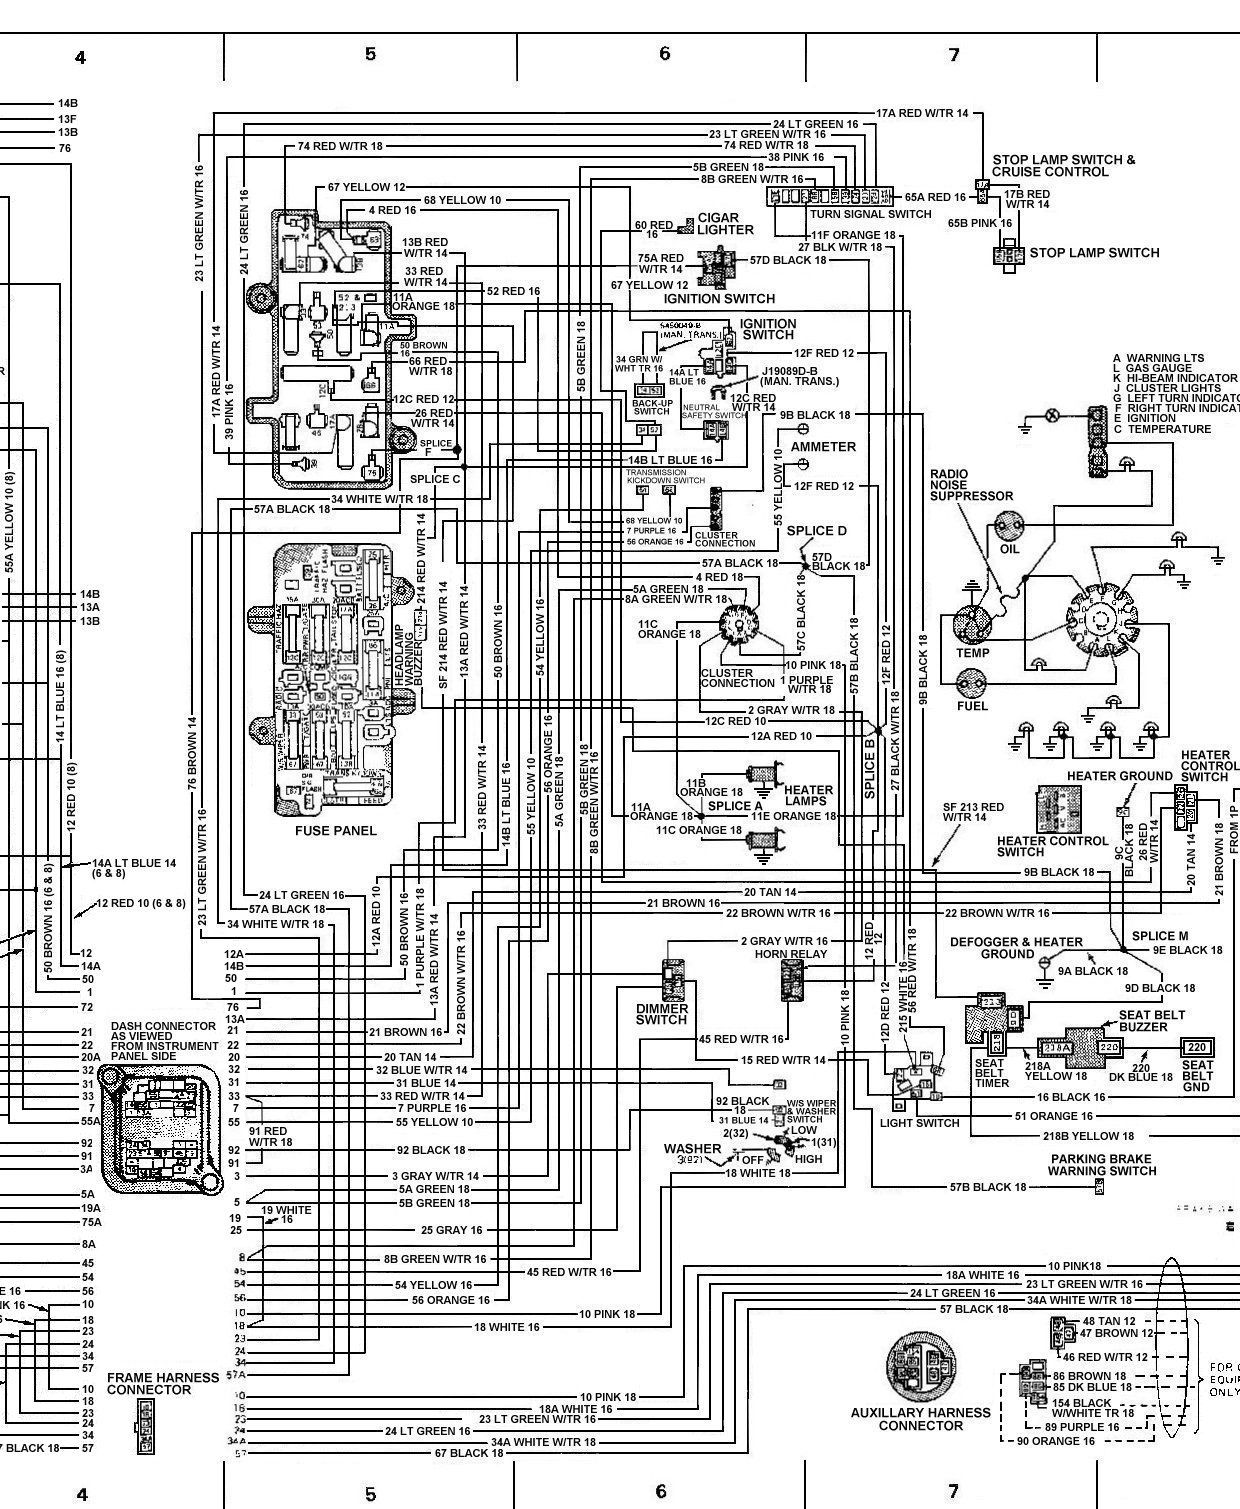 DIAGRAM] Kia Sportage 2016 User Wiring Diagram FULL Version HD Quality Wiring  Diagram - SHOETFUSE7253.FUJIYA.ITshoetfuse7253.fujiya.it